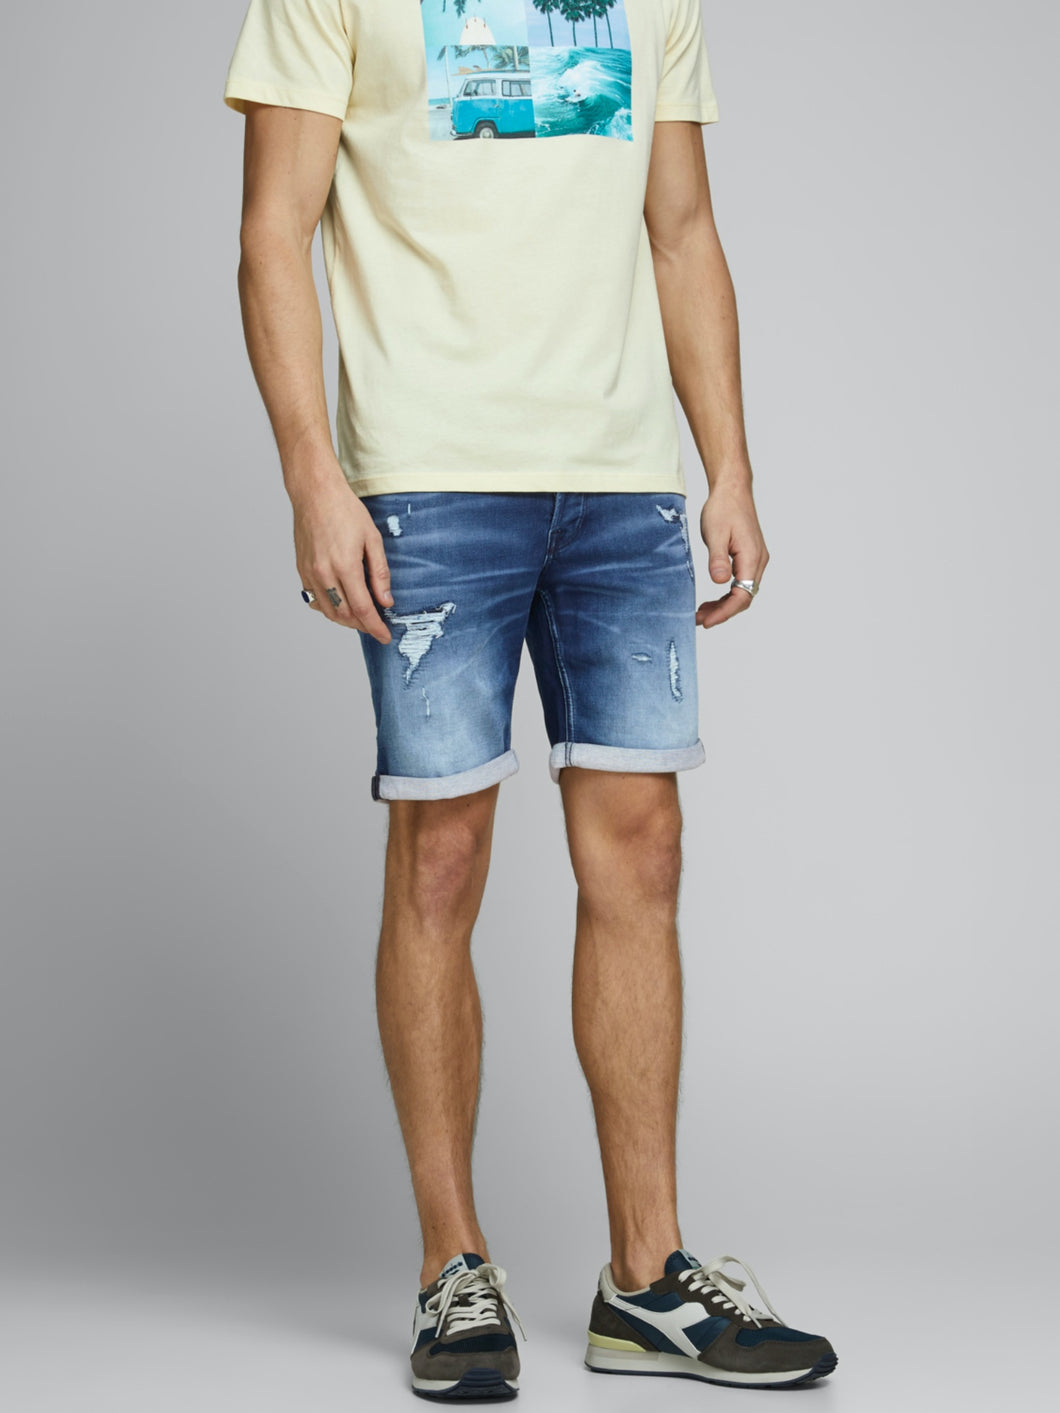 Rick Icon Shorts 007 - Blue Denim / S - SHORTS DENIM, HERR,